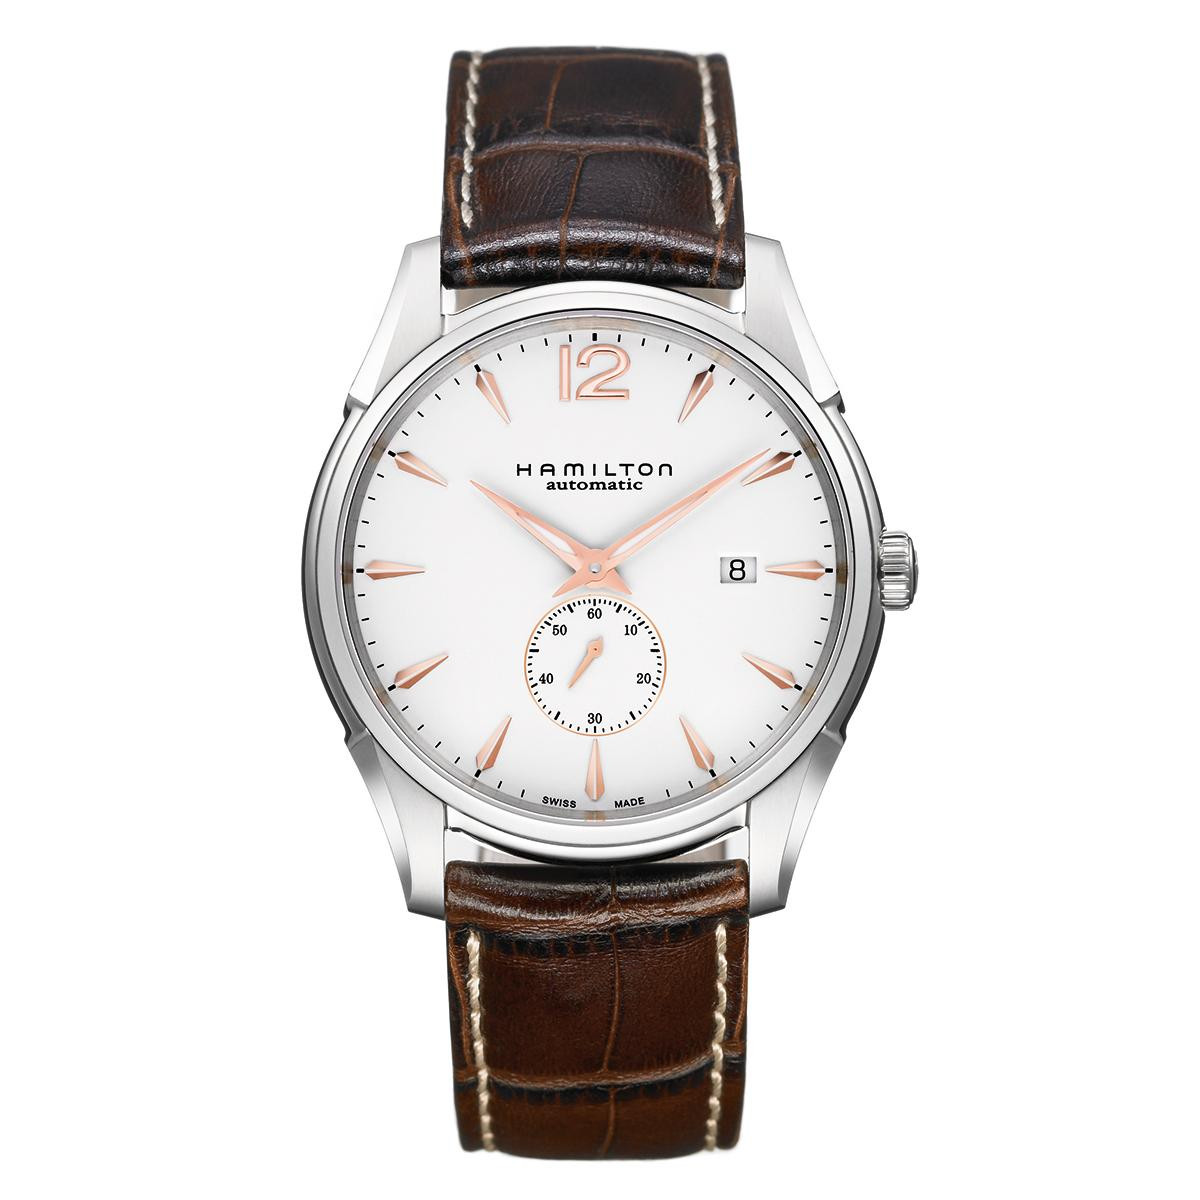 New Hamilton Jazzmaster Slim Petite Seconde